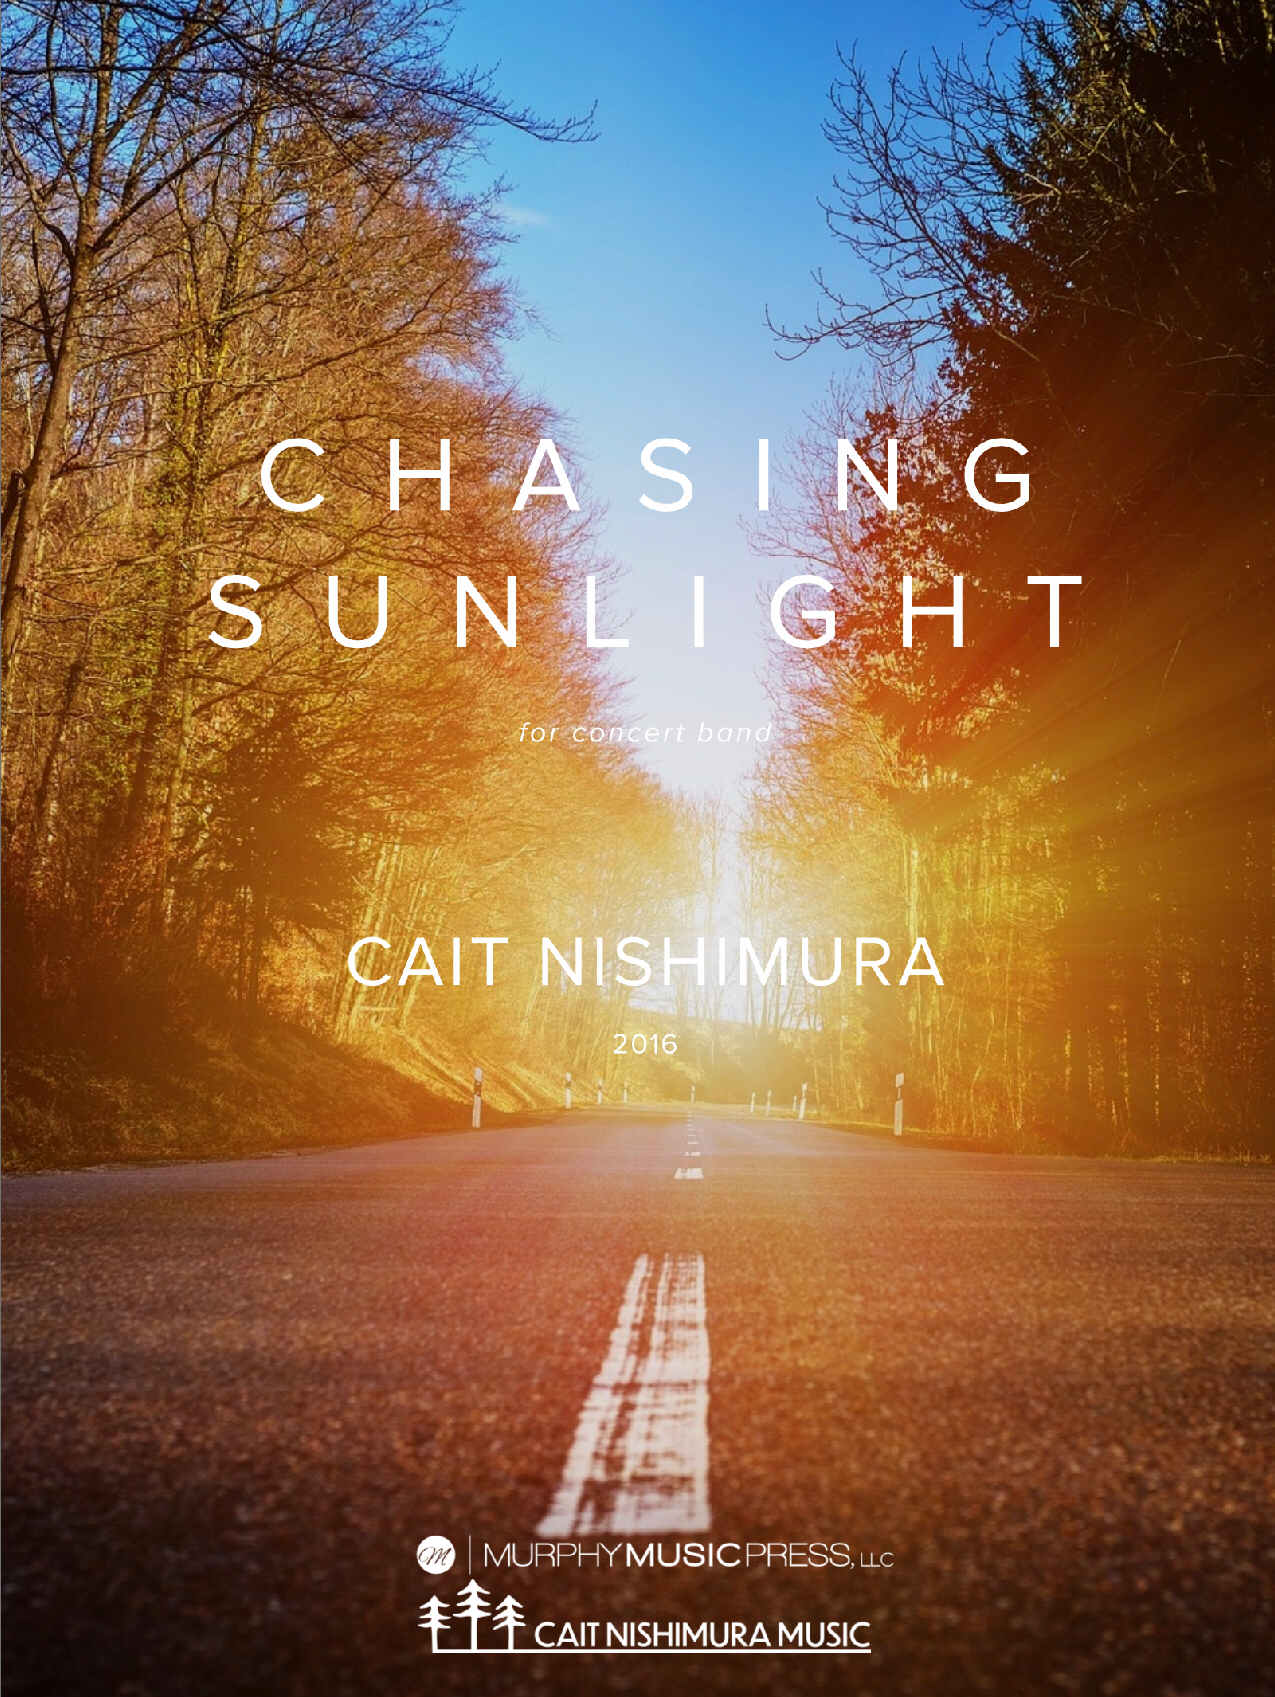 Chasing Sunlight (Score Only) by Cait Nishimura